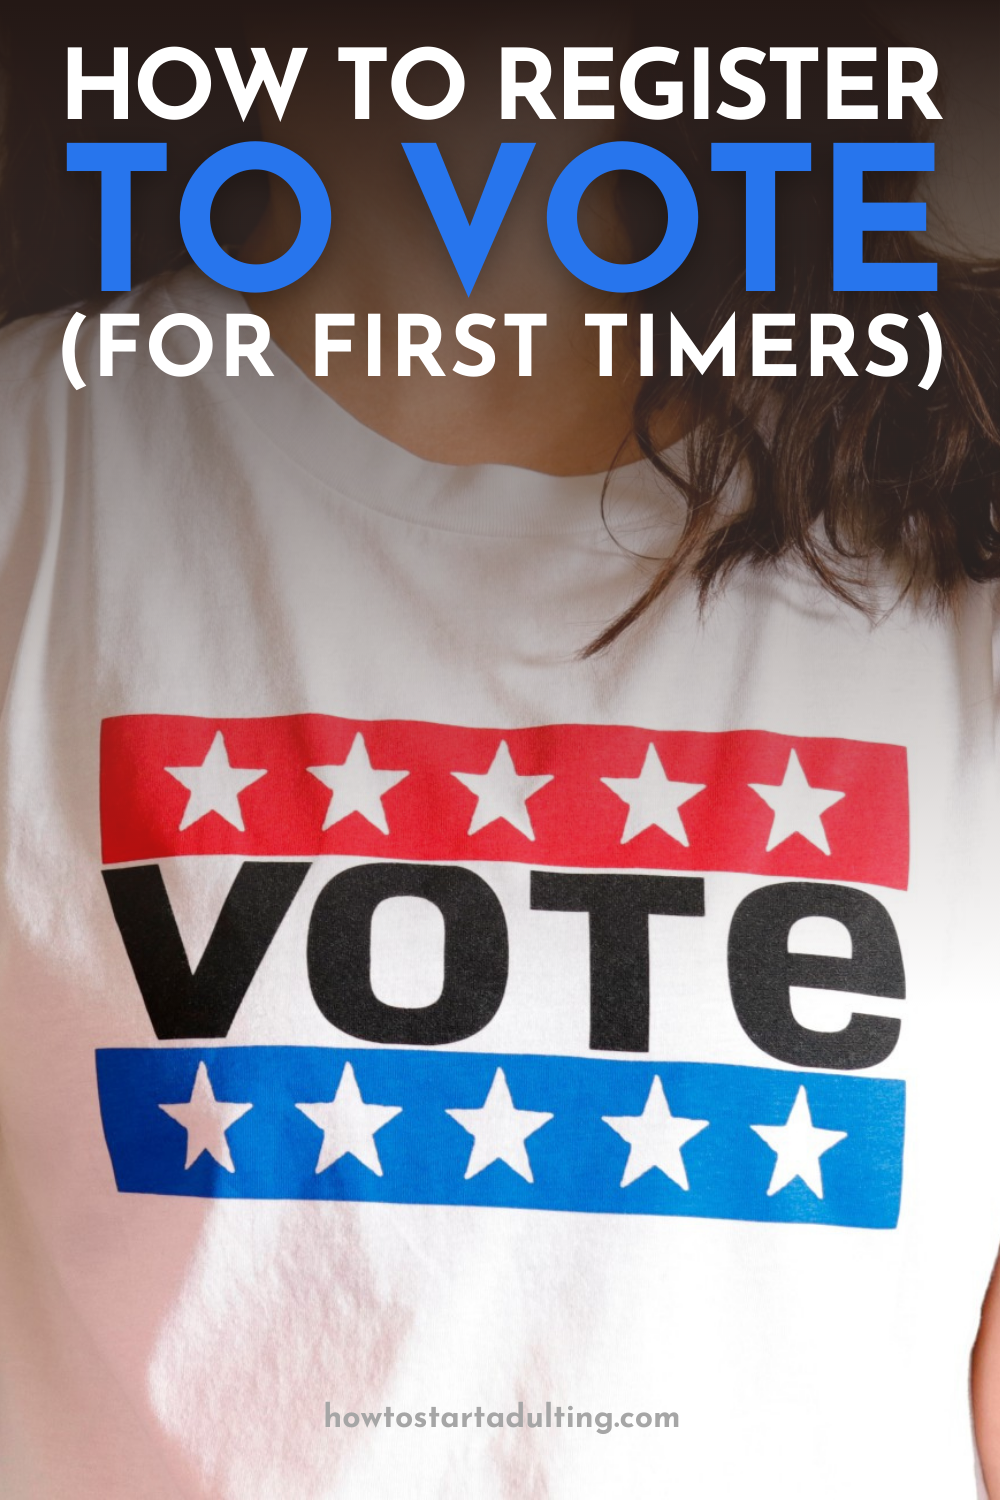 How To Register To Vote (For First Timers)